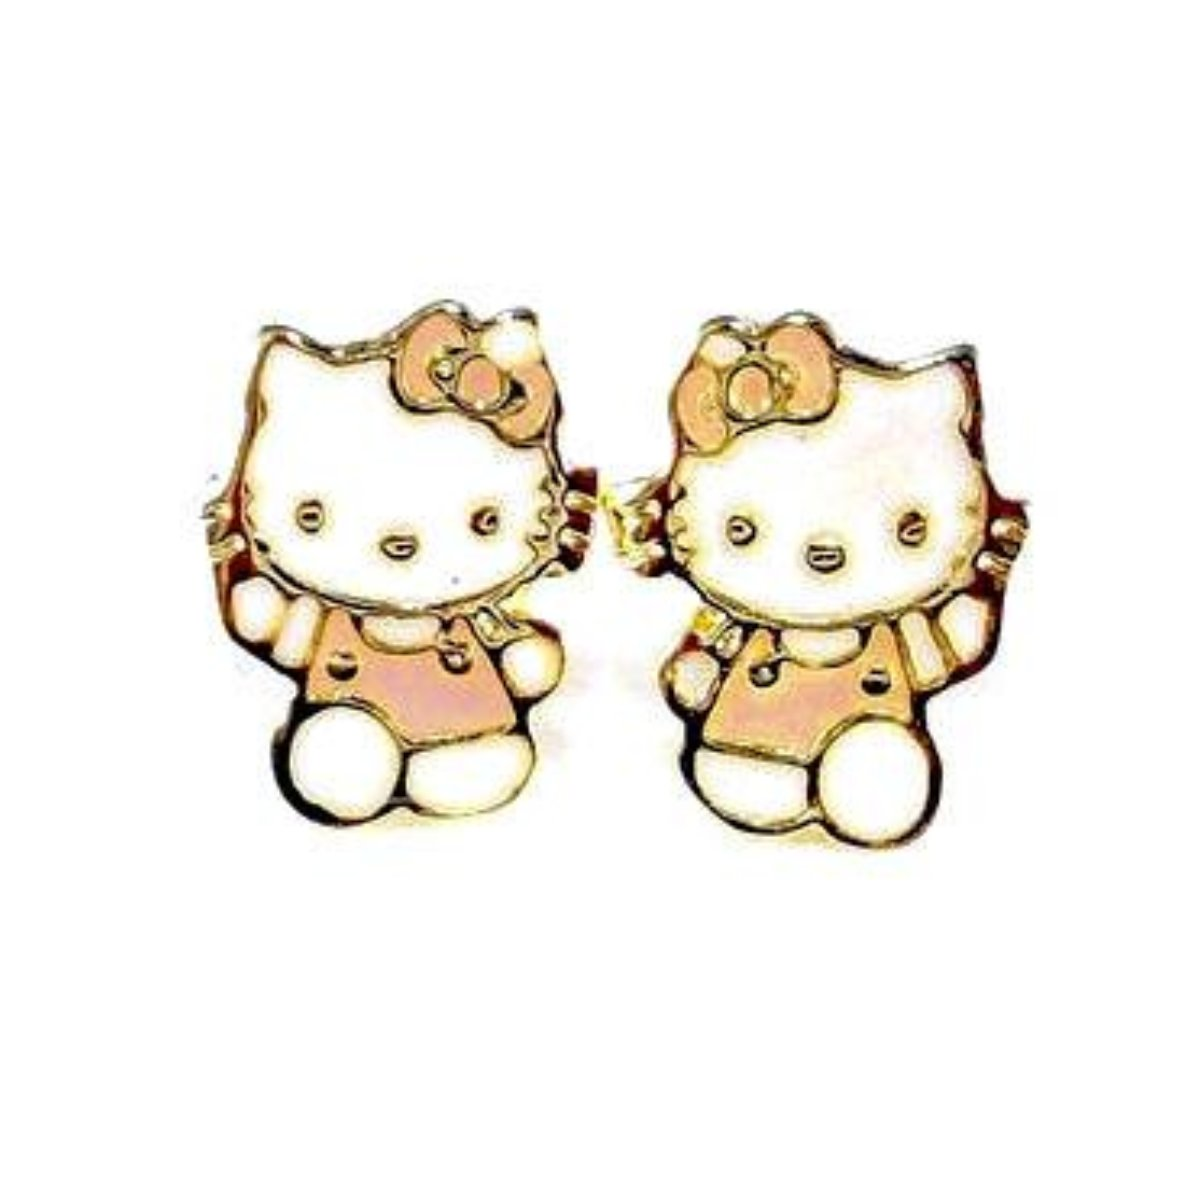 18ct Gold Plated Hello Kitty Stud Earrings Almojewellery